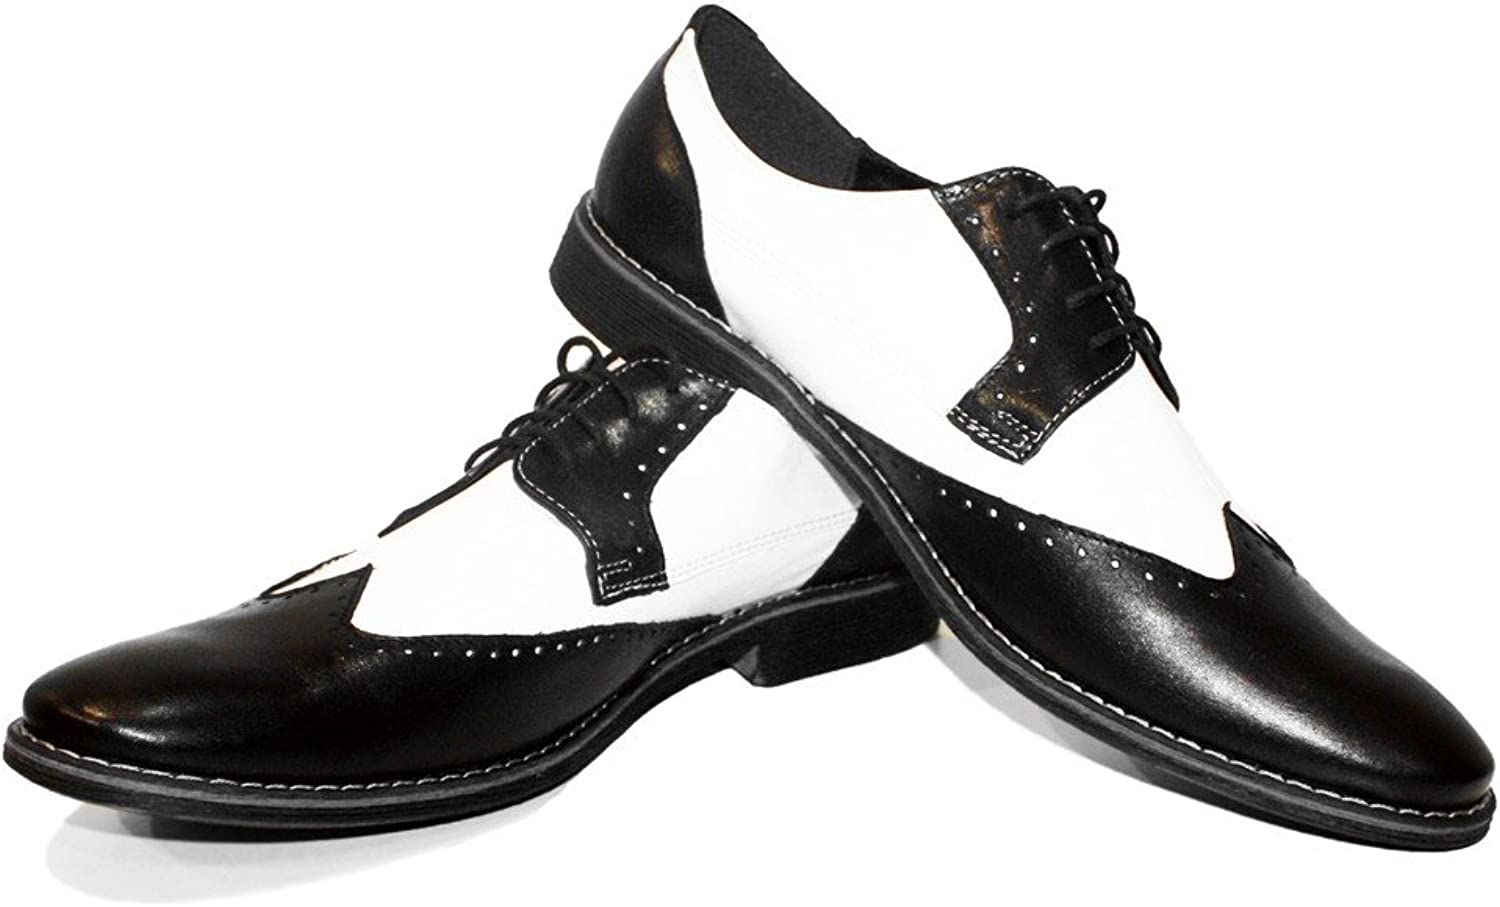 Modello Capones Due - Handmade Italian Leather Mens color White Oxfords Dress shoes - Cowhide Smooth Leather - Lace-Up